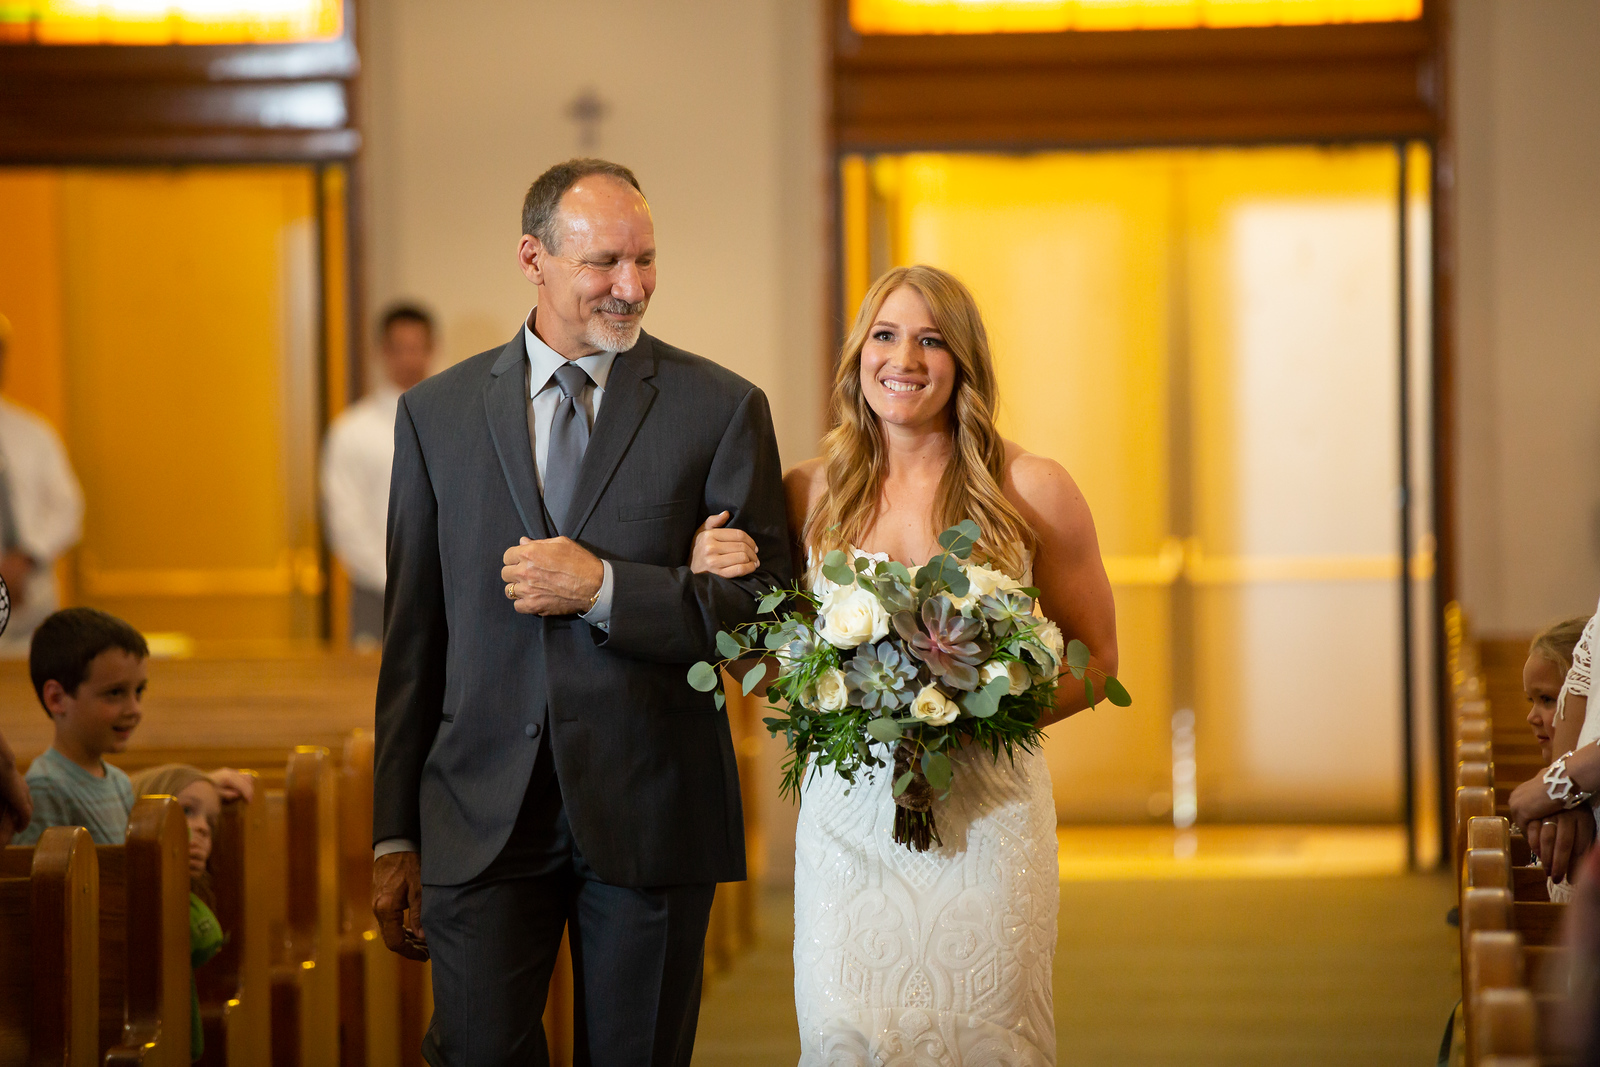 Father proudly walks his daughter down the aisle